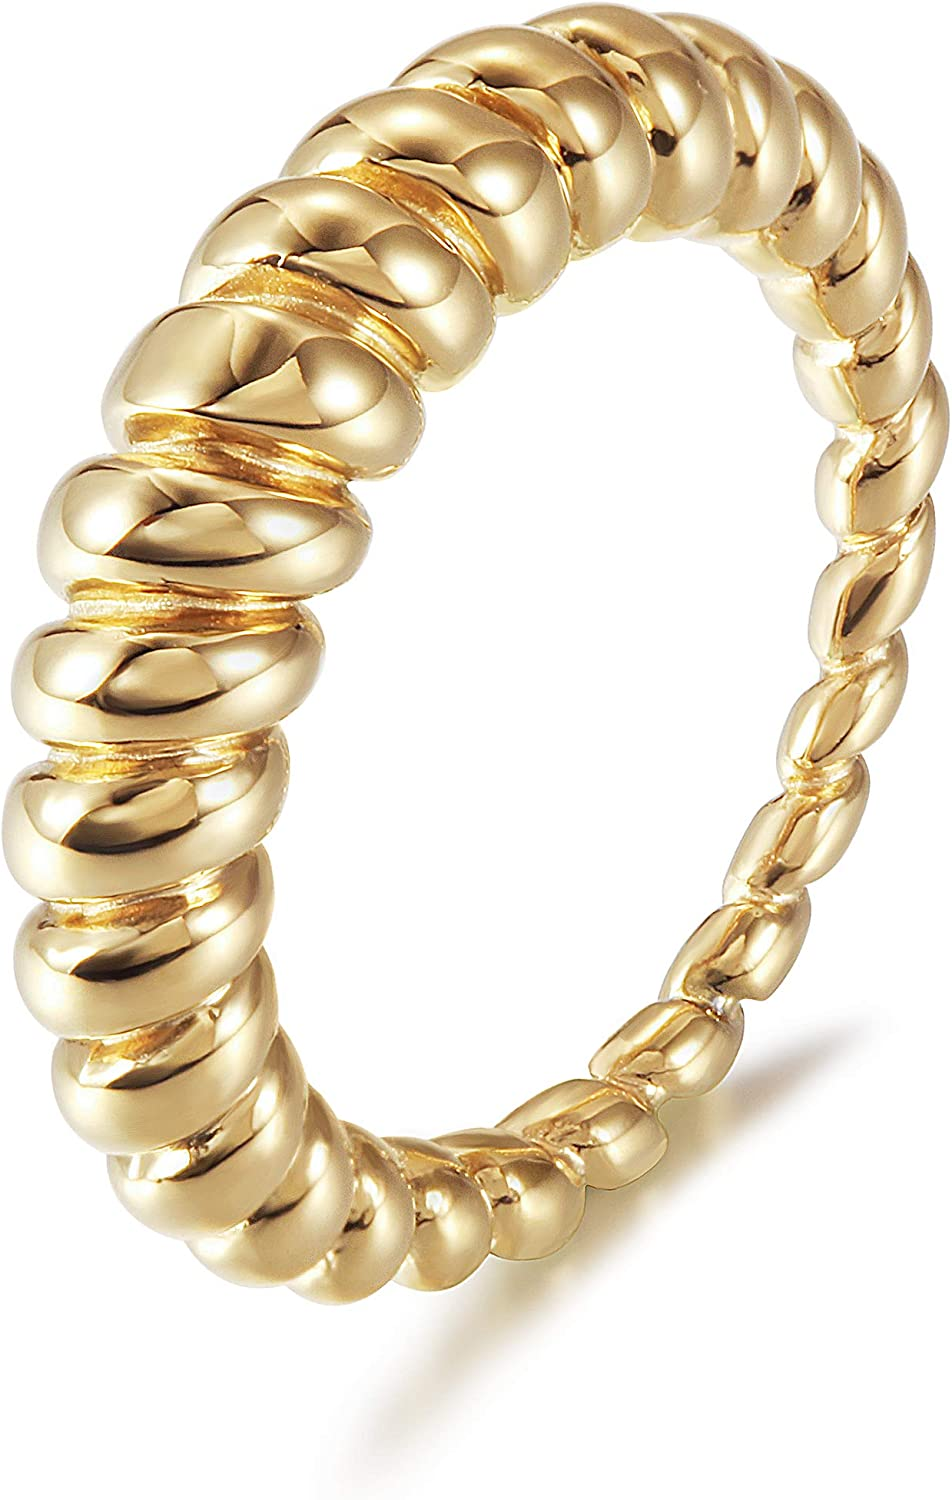 store Sale SALE% OFF WISTIC Gold Croissant Twisted Rings for Girls Women Dome Chunky